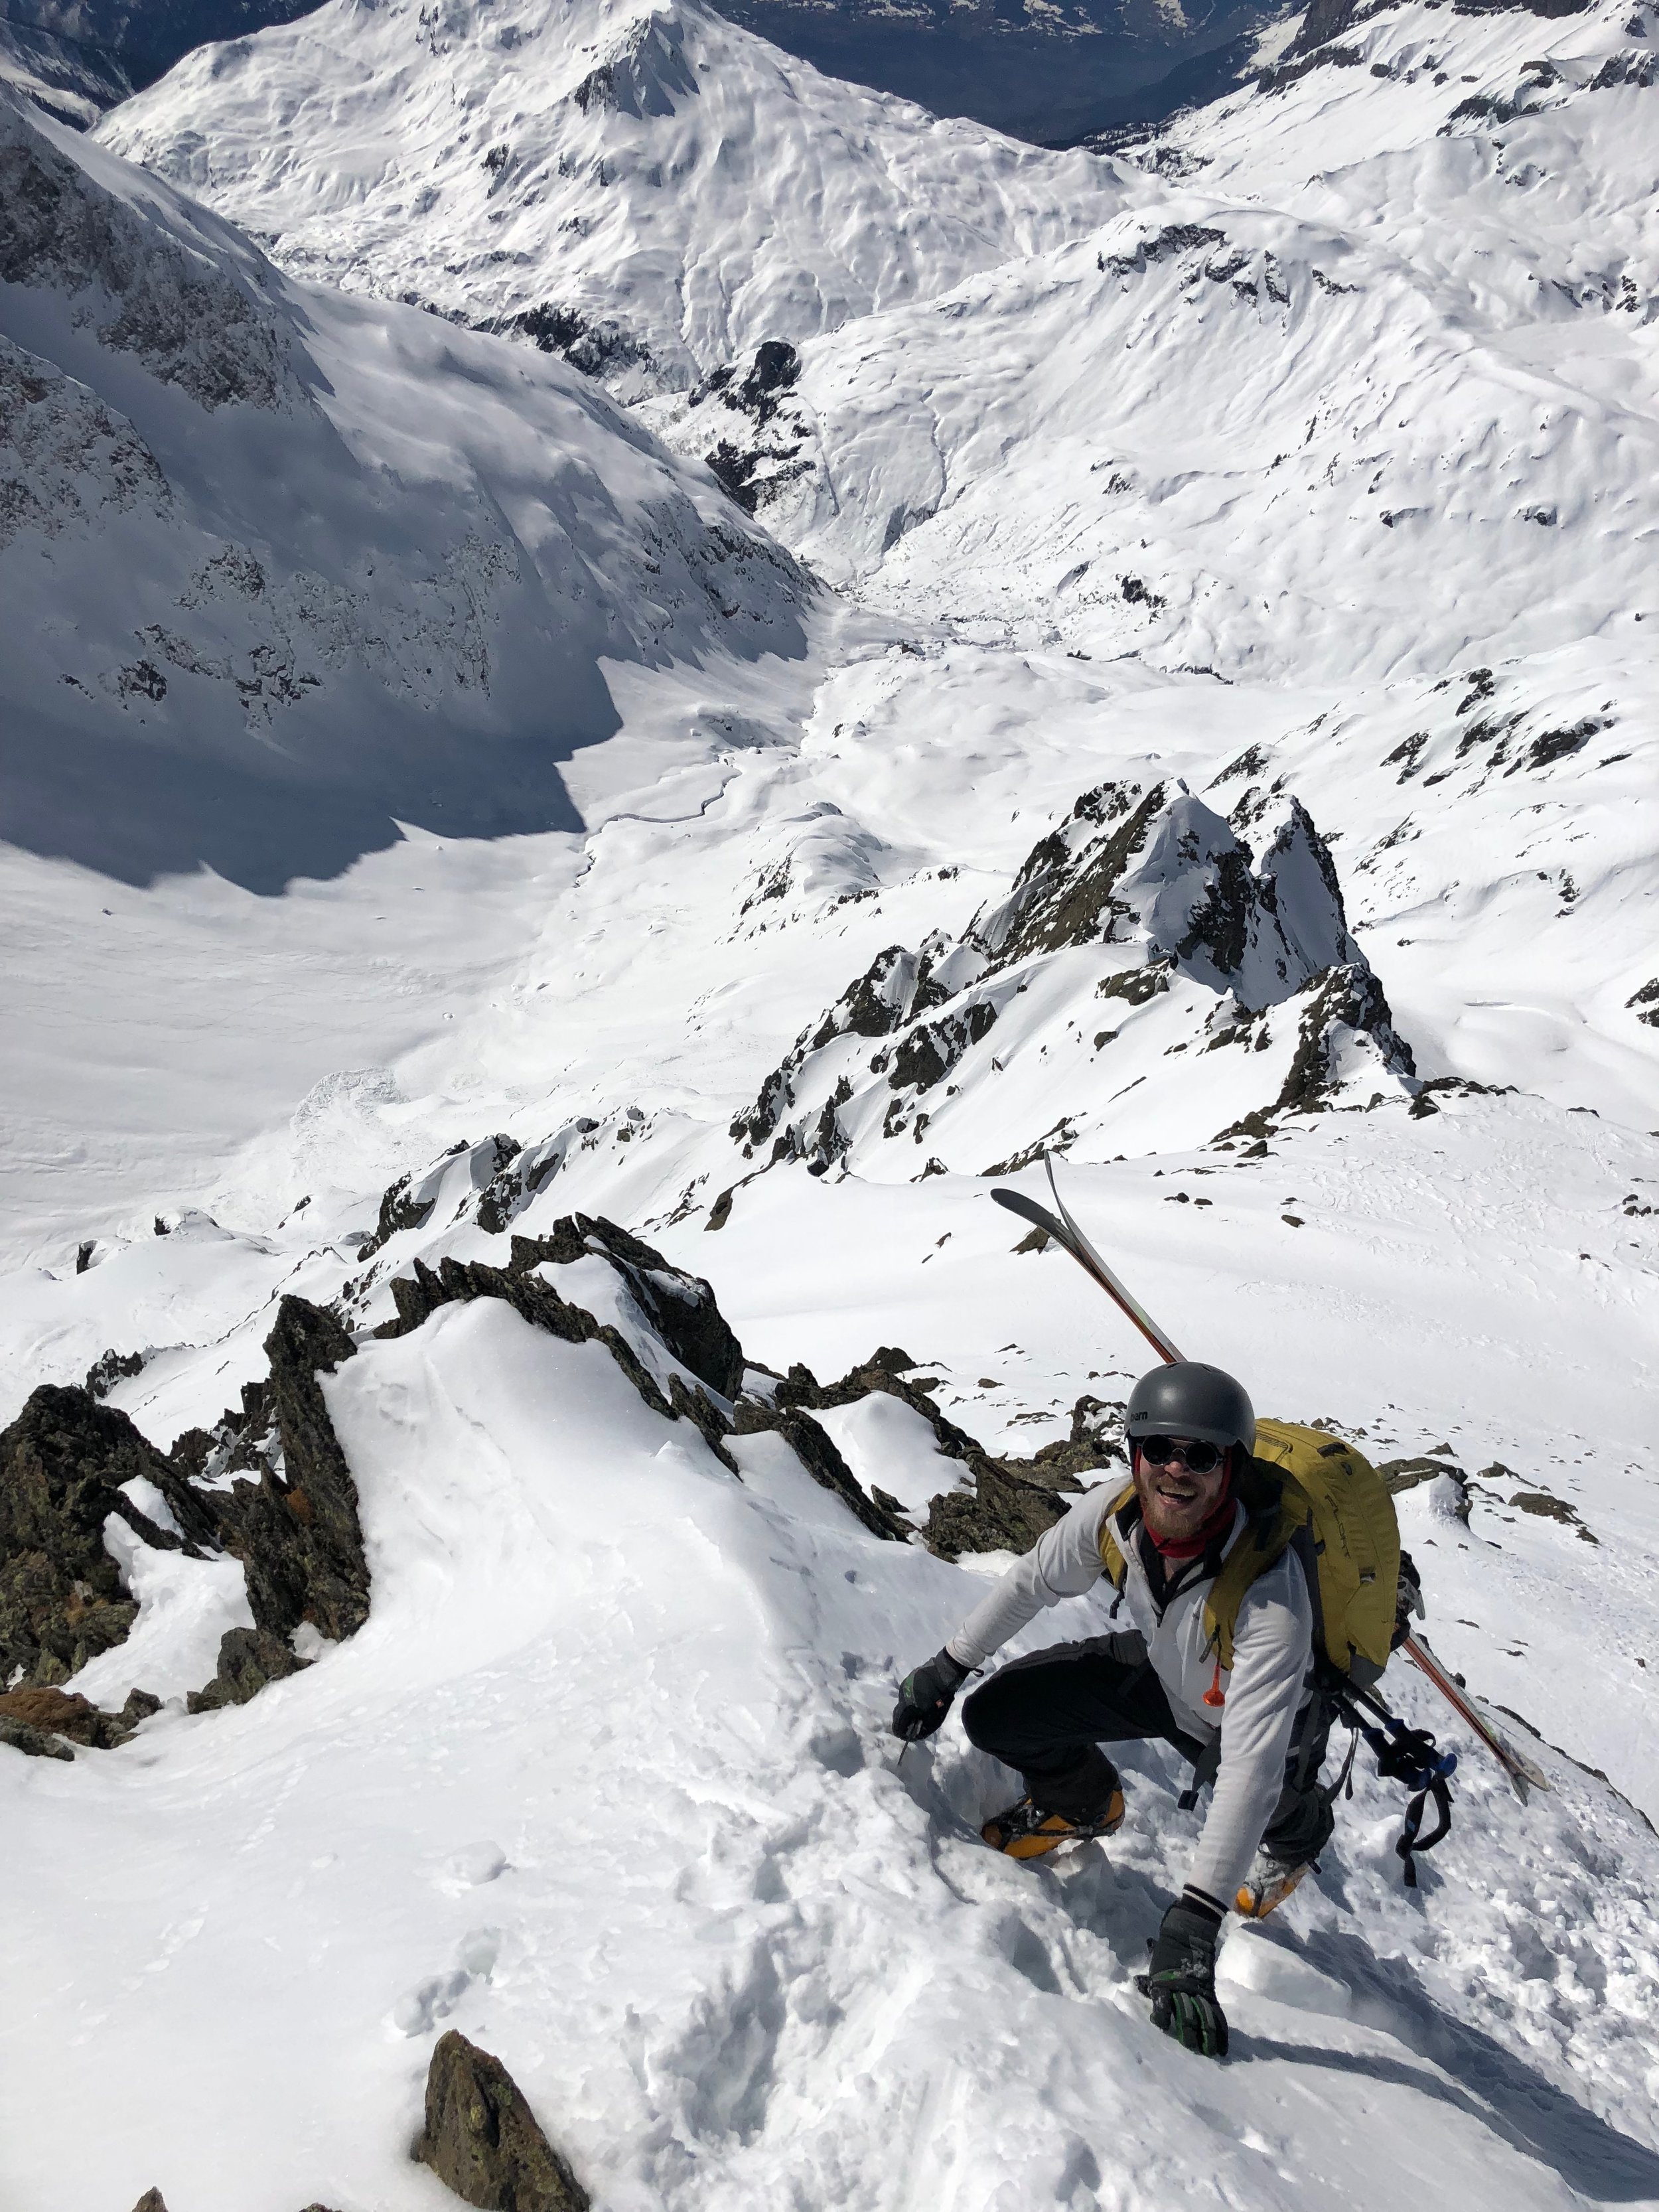 Ice axe, crampons.. This isn't skiing!